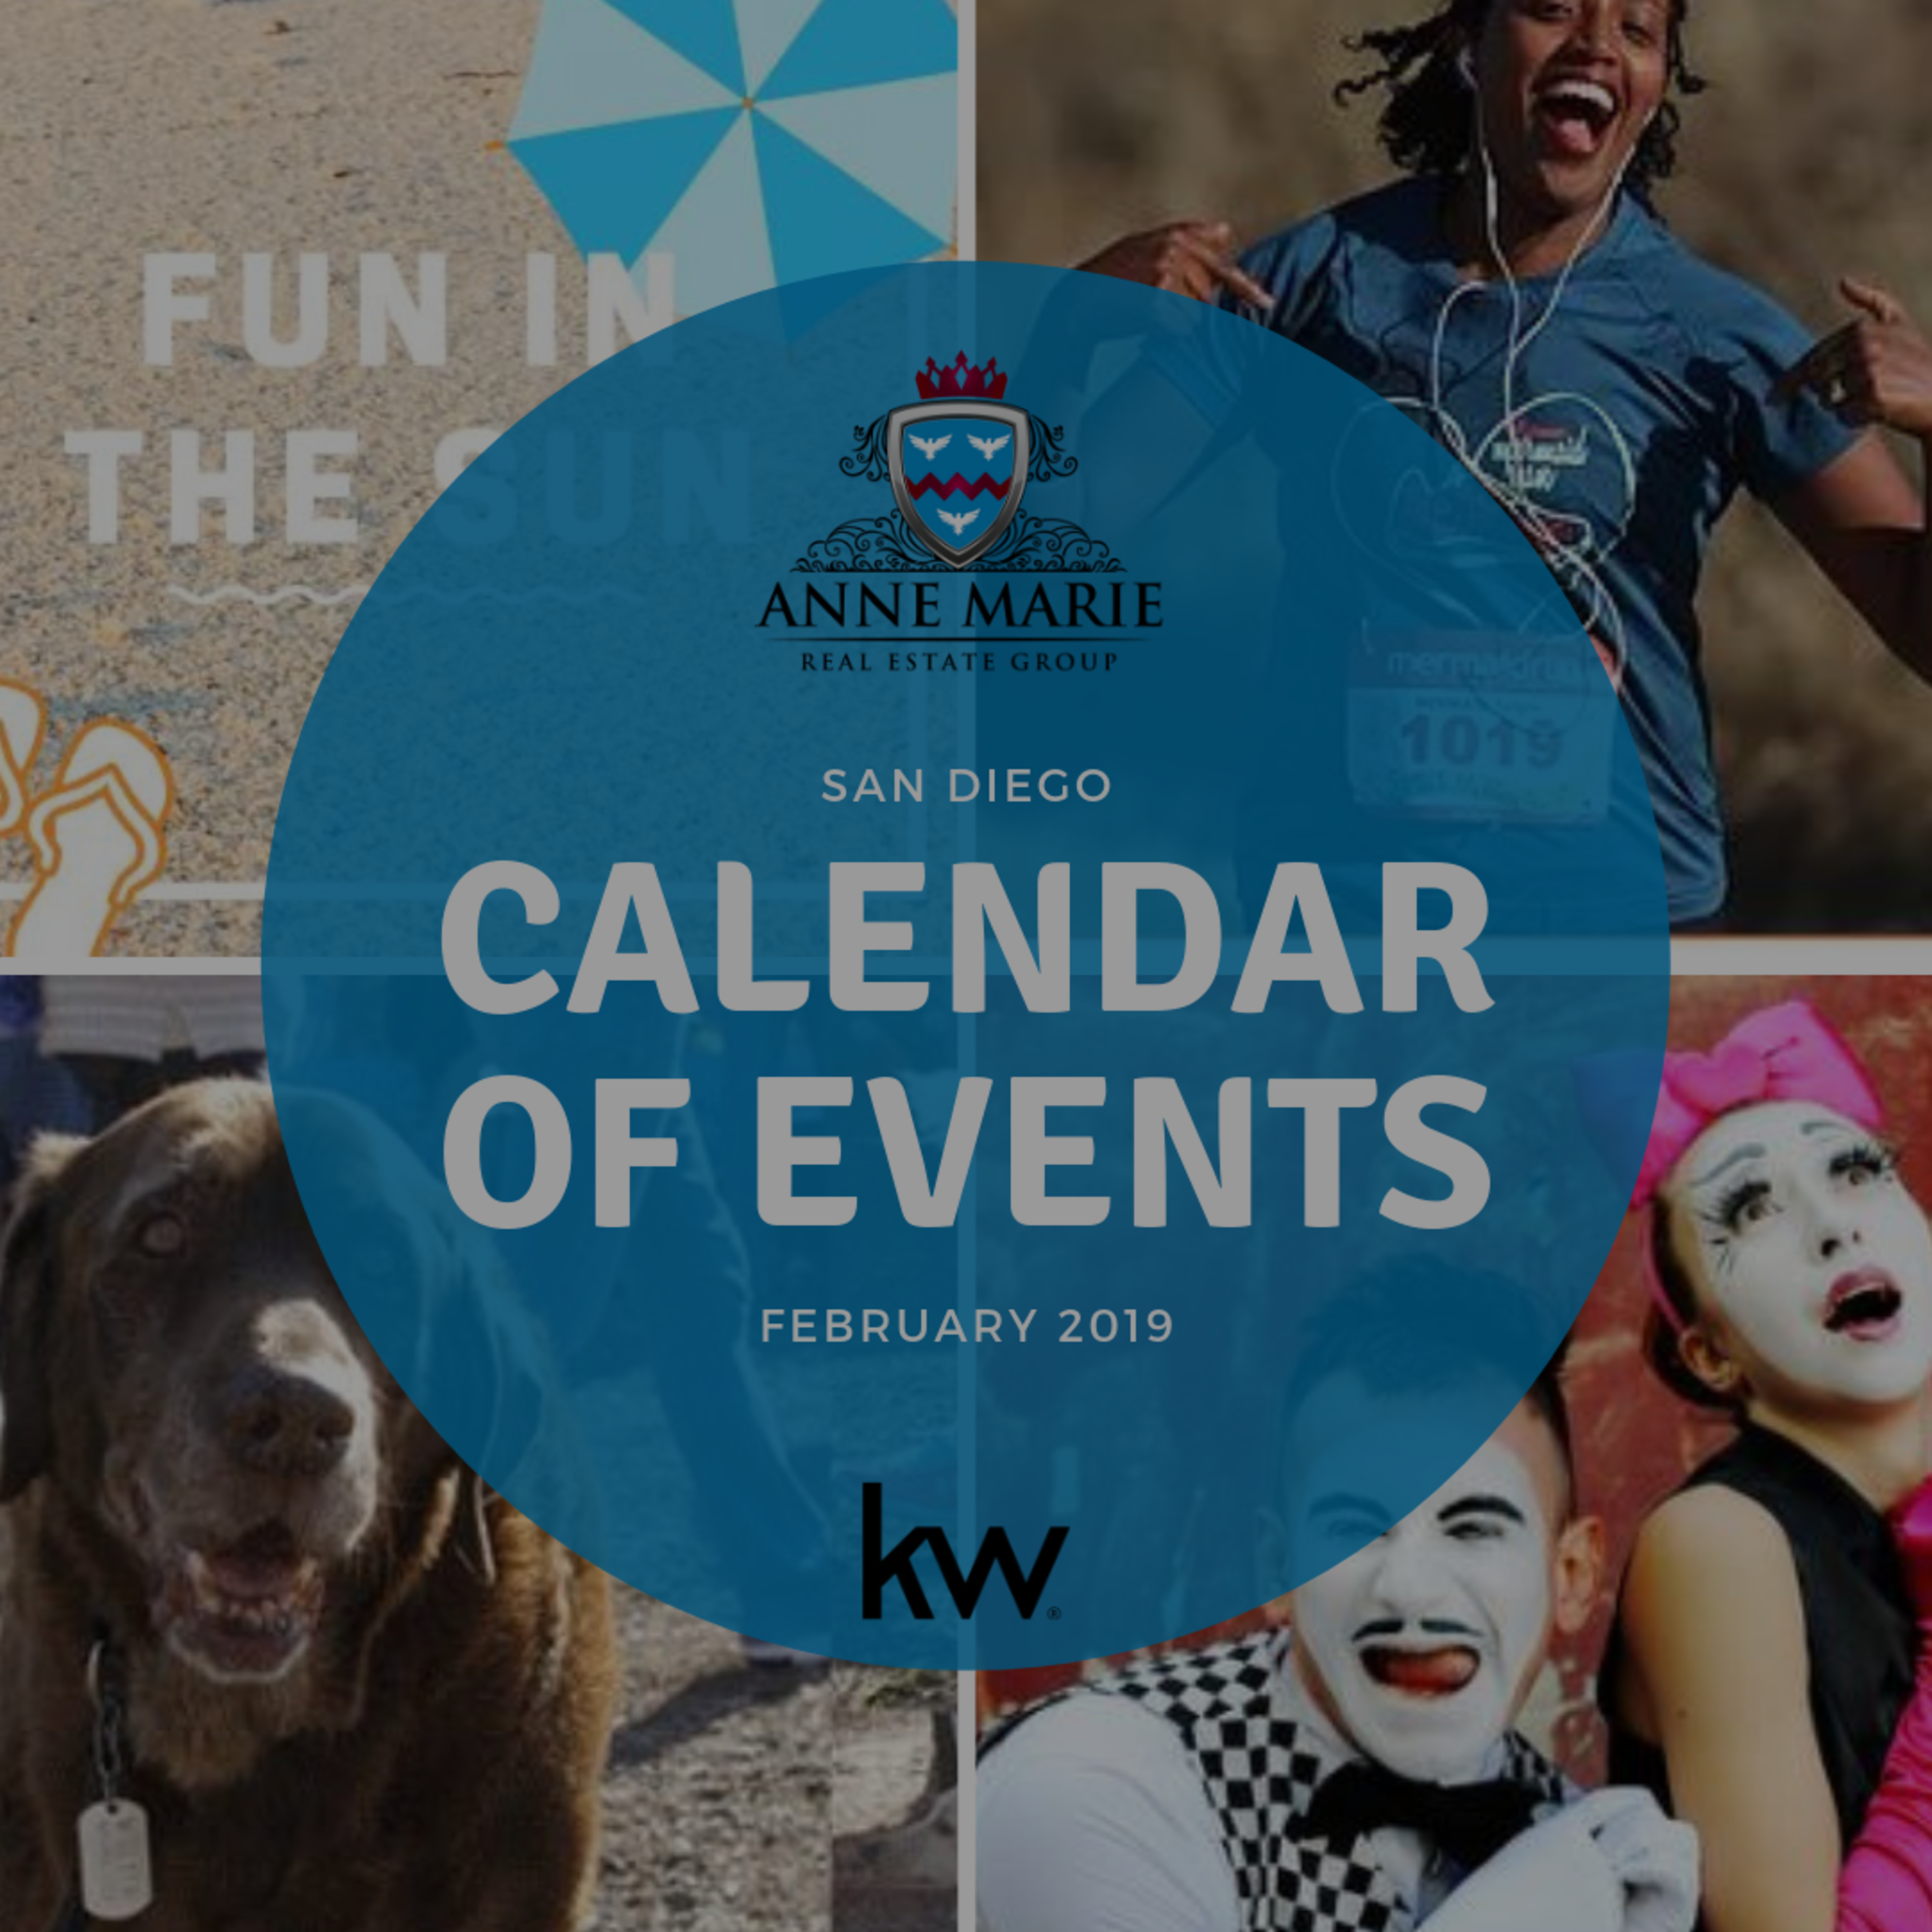 February 2019 Events in San Diego